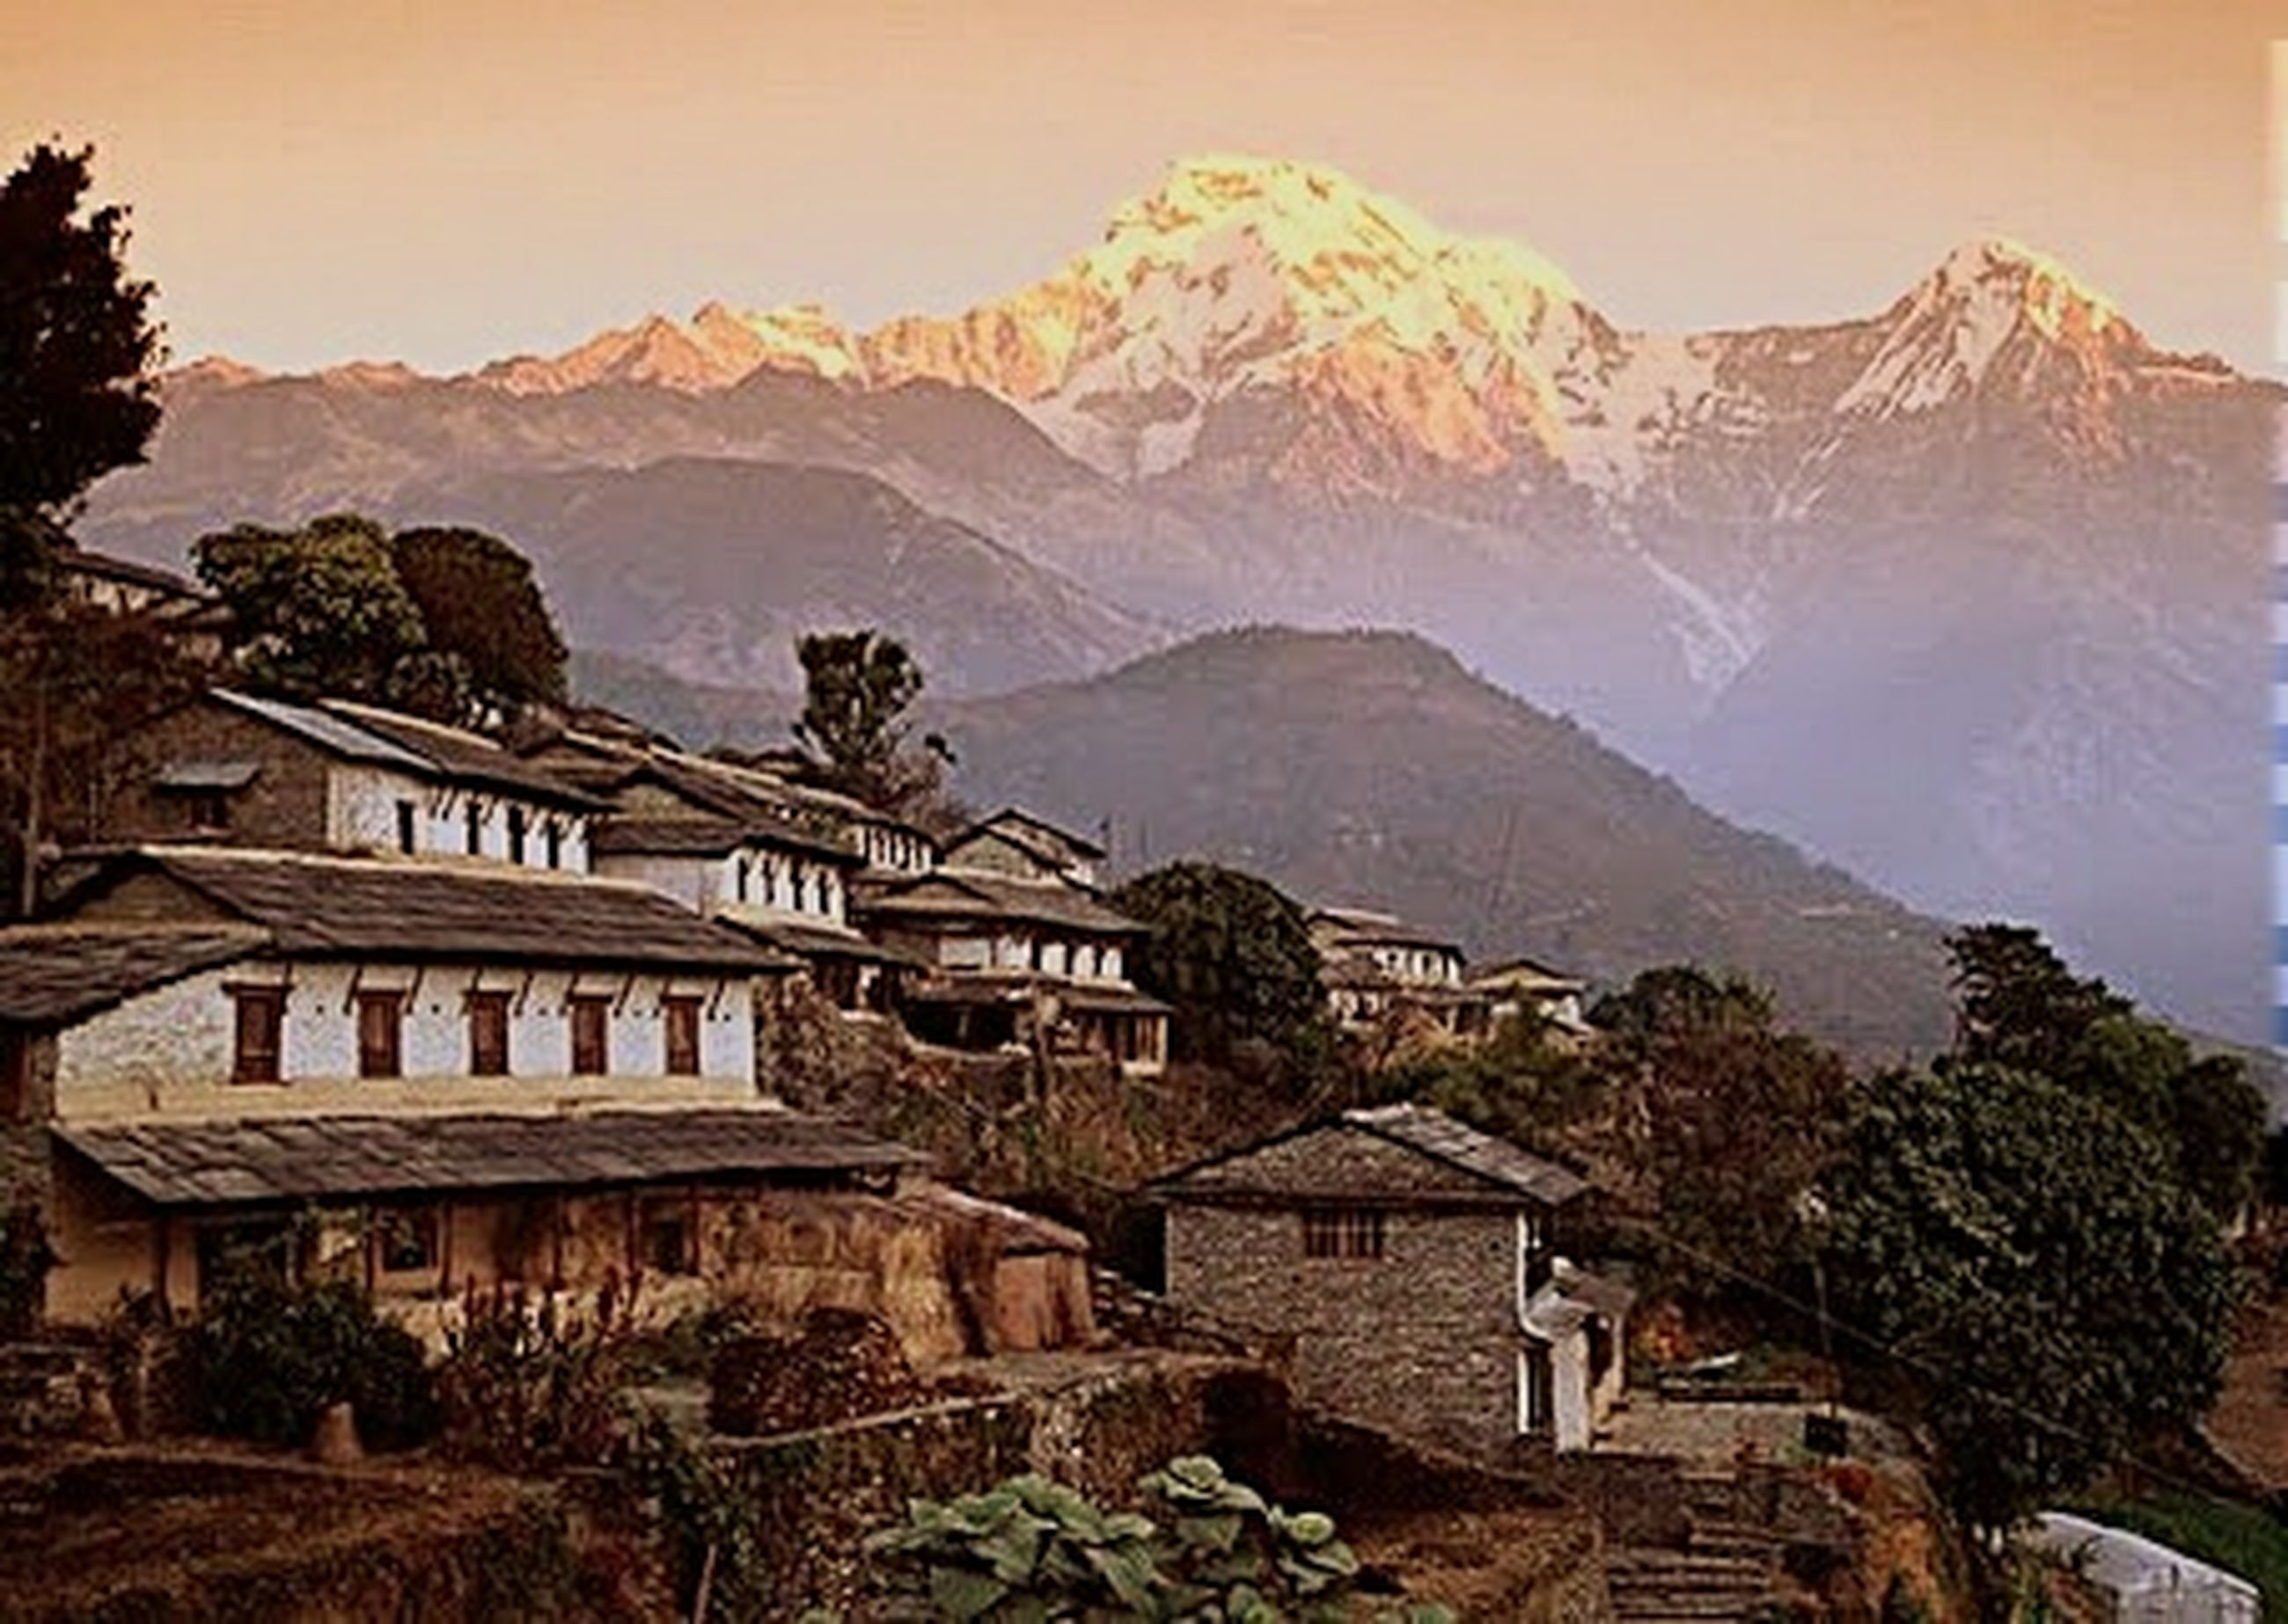 mountain, mountain range, built structure, building exterior, architecture, house, tree, residential structure, scenics, residential building, tranquility, sky, beauty in nature, nature, winter, tranquil scene, town, village, snow, landscape